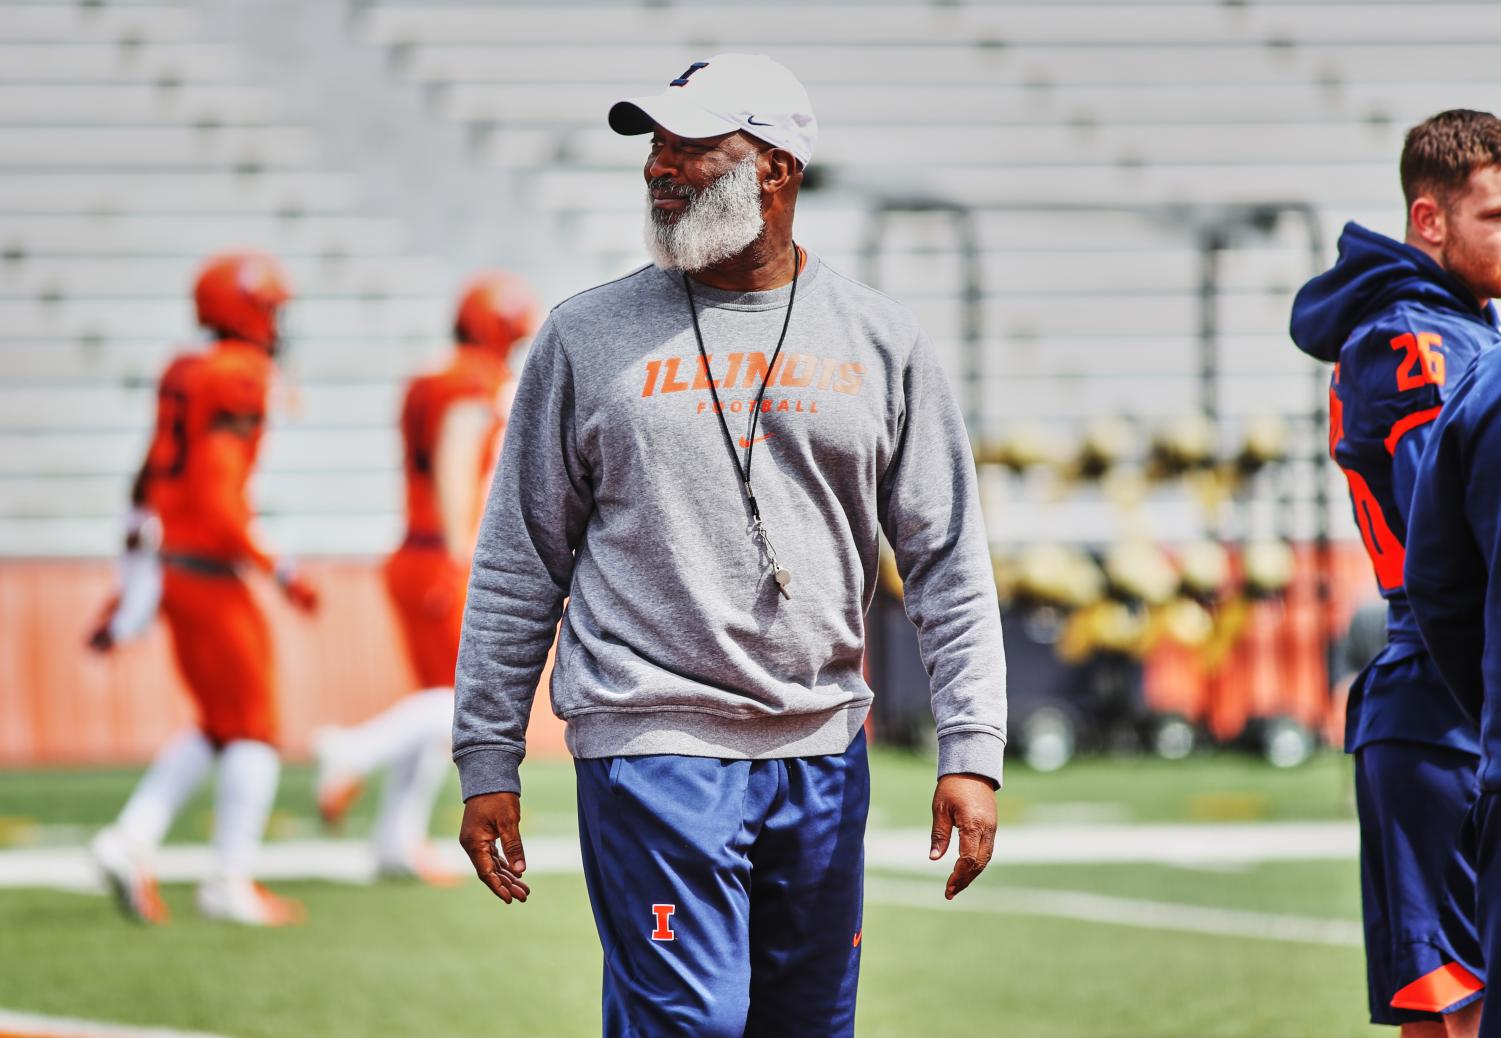 Big Ten Releases Revised 2020 Football Schedule The Daily Illini